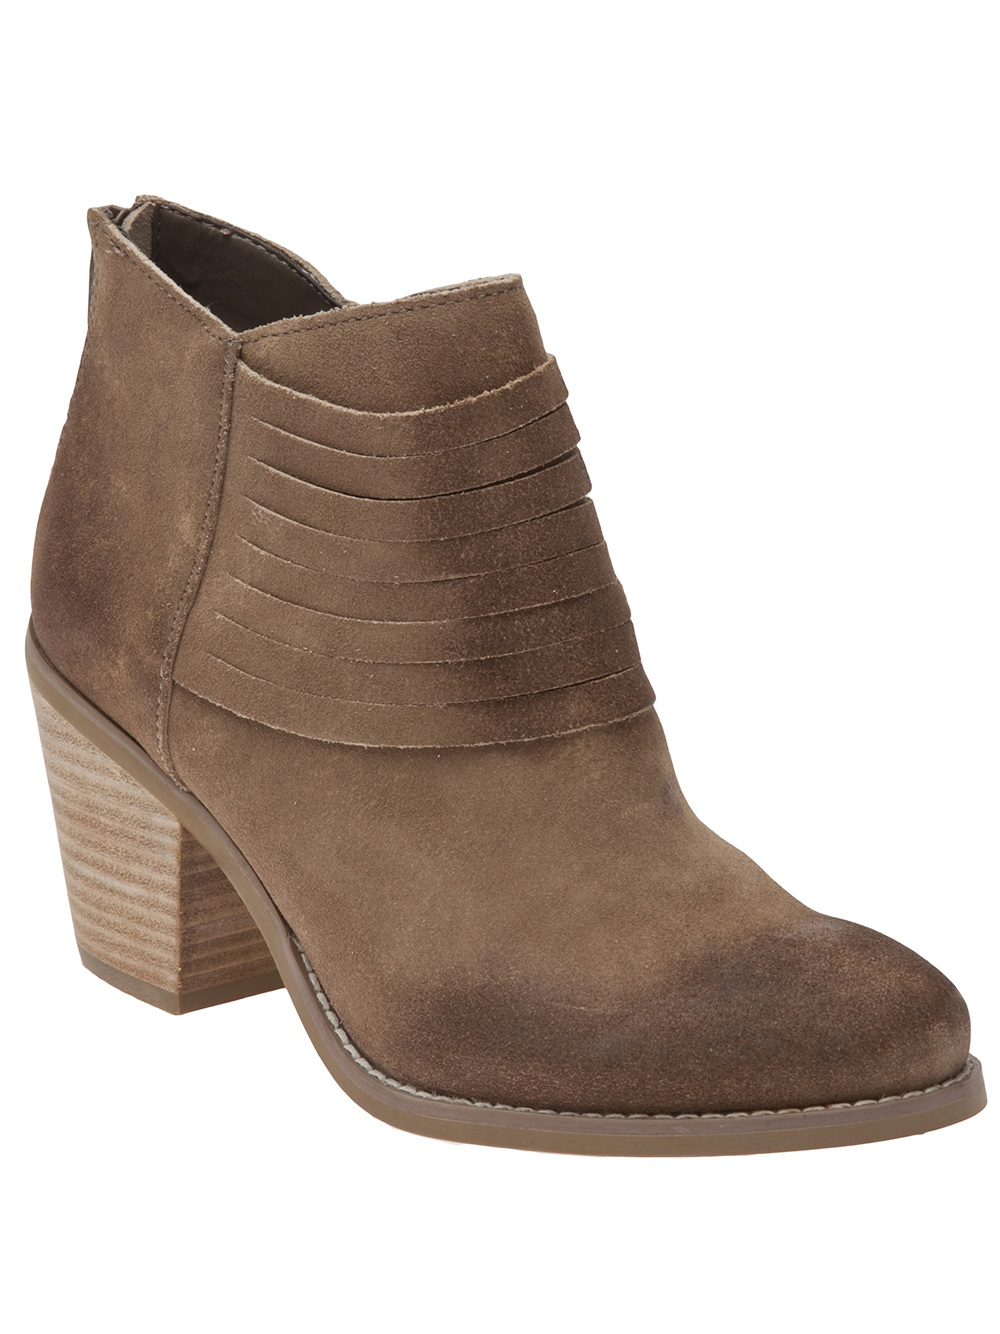 Lyst Seychelles Stacked Heel Ankle Boot In Brown